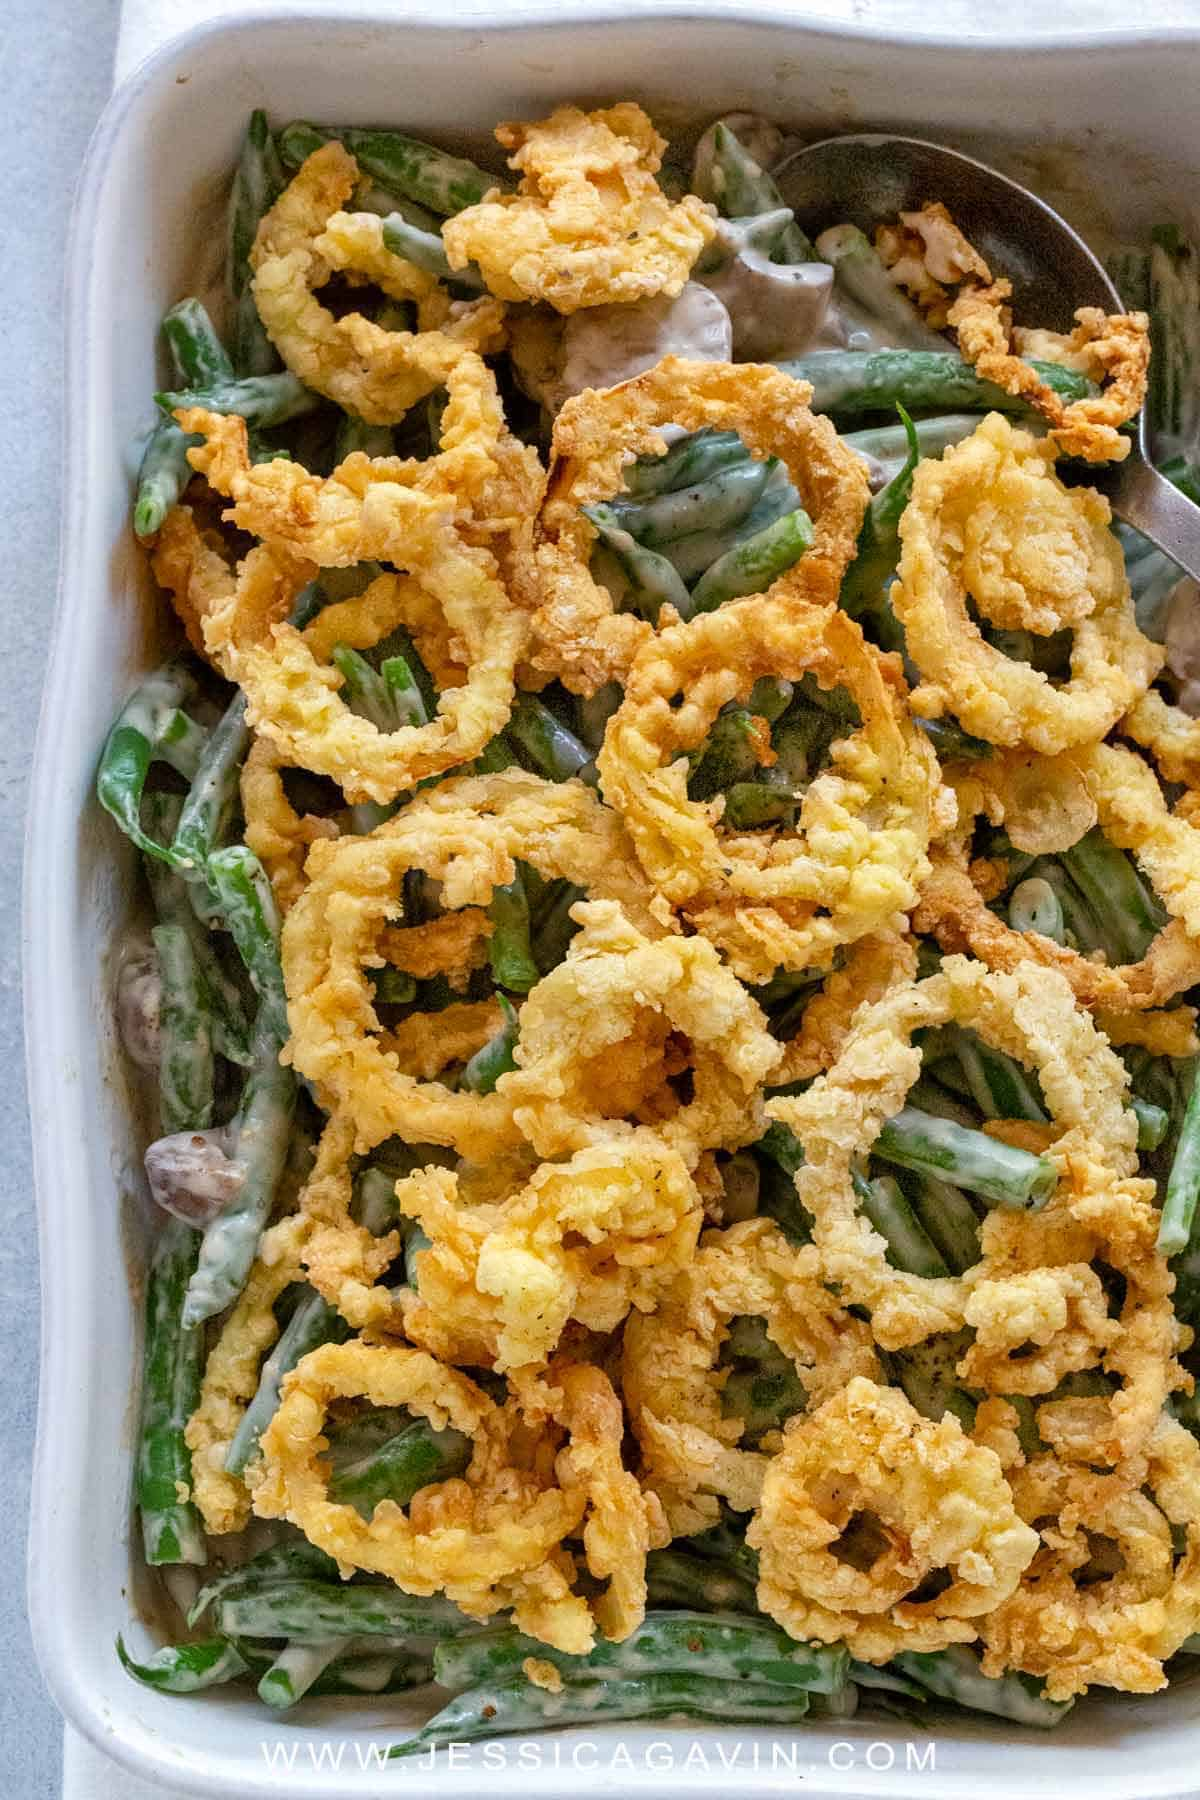 This green bean casserole side dish features crunchy beans tossed in a creamy mushroom sauce and topped with crispy fried onions rings. #greenbeans #thanksgiving #sidedish #onionrings #casserole